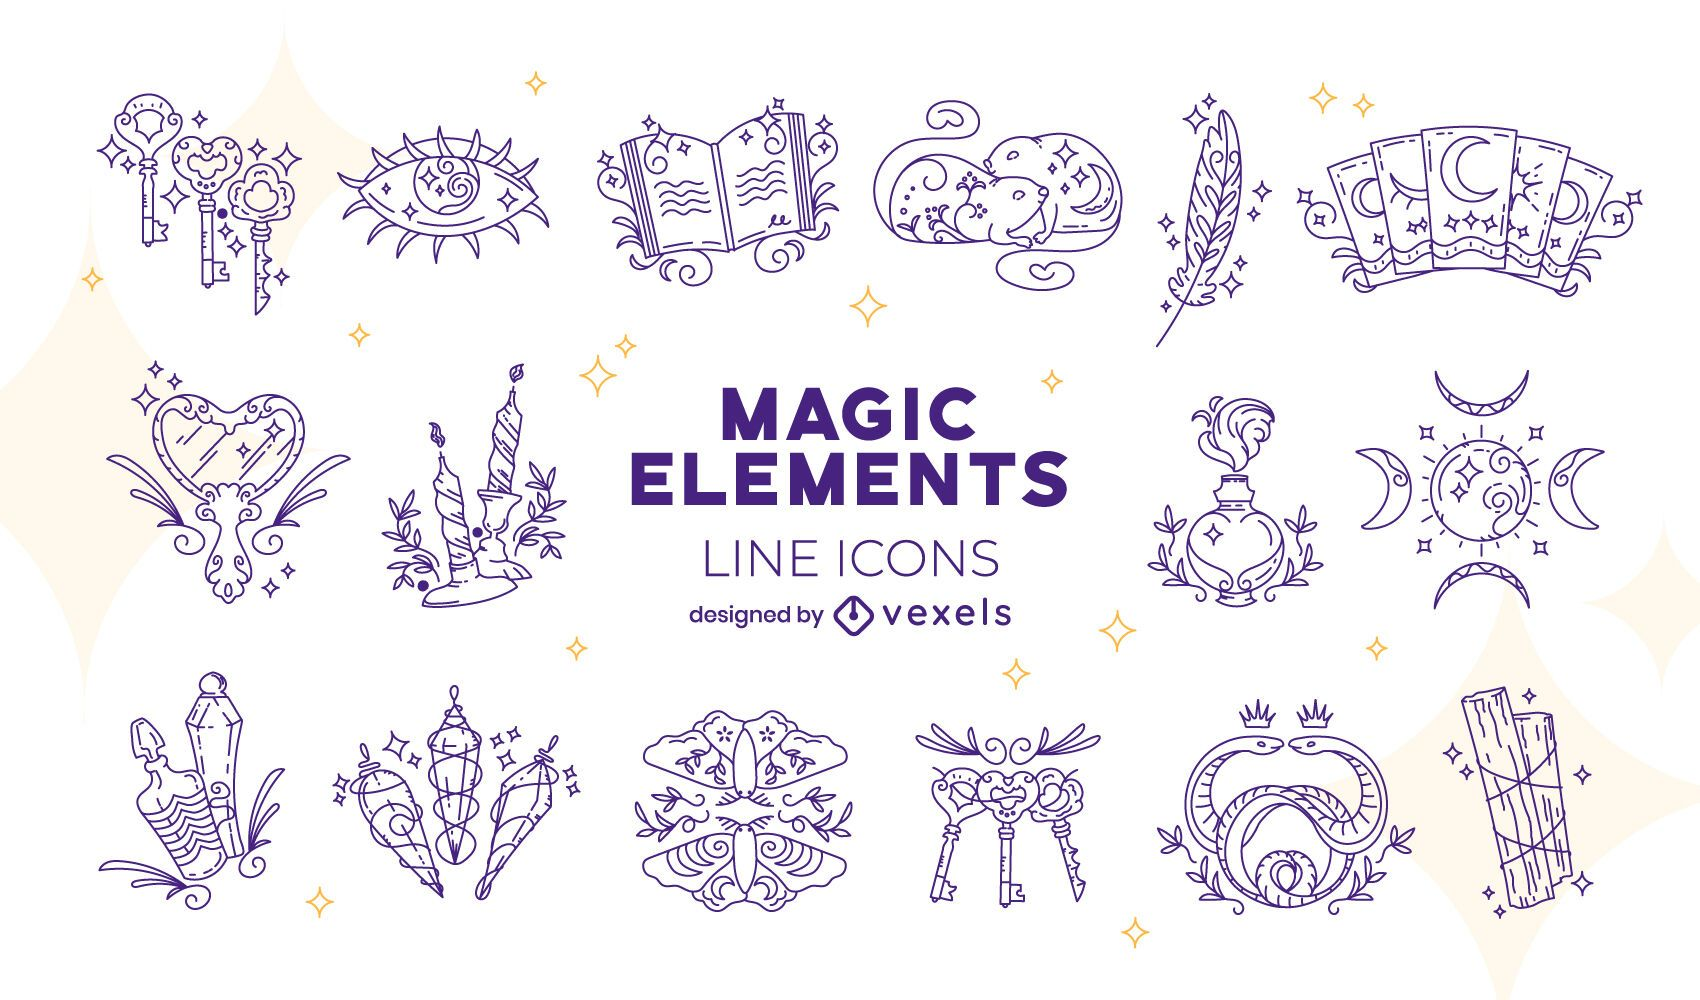 Magic elements icon pack